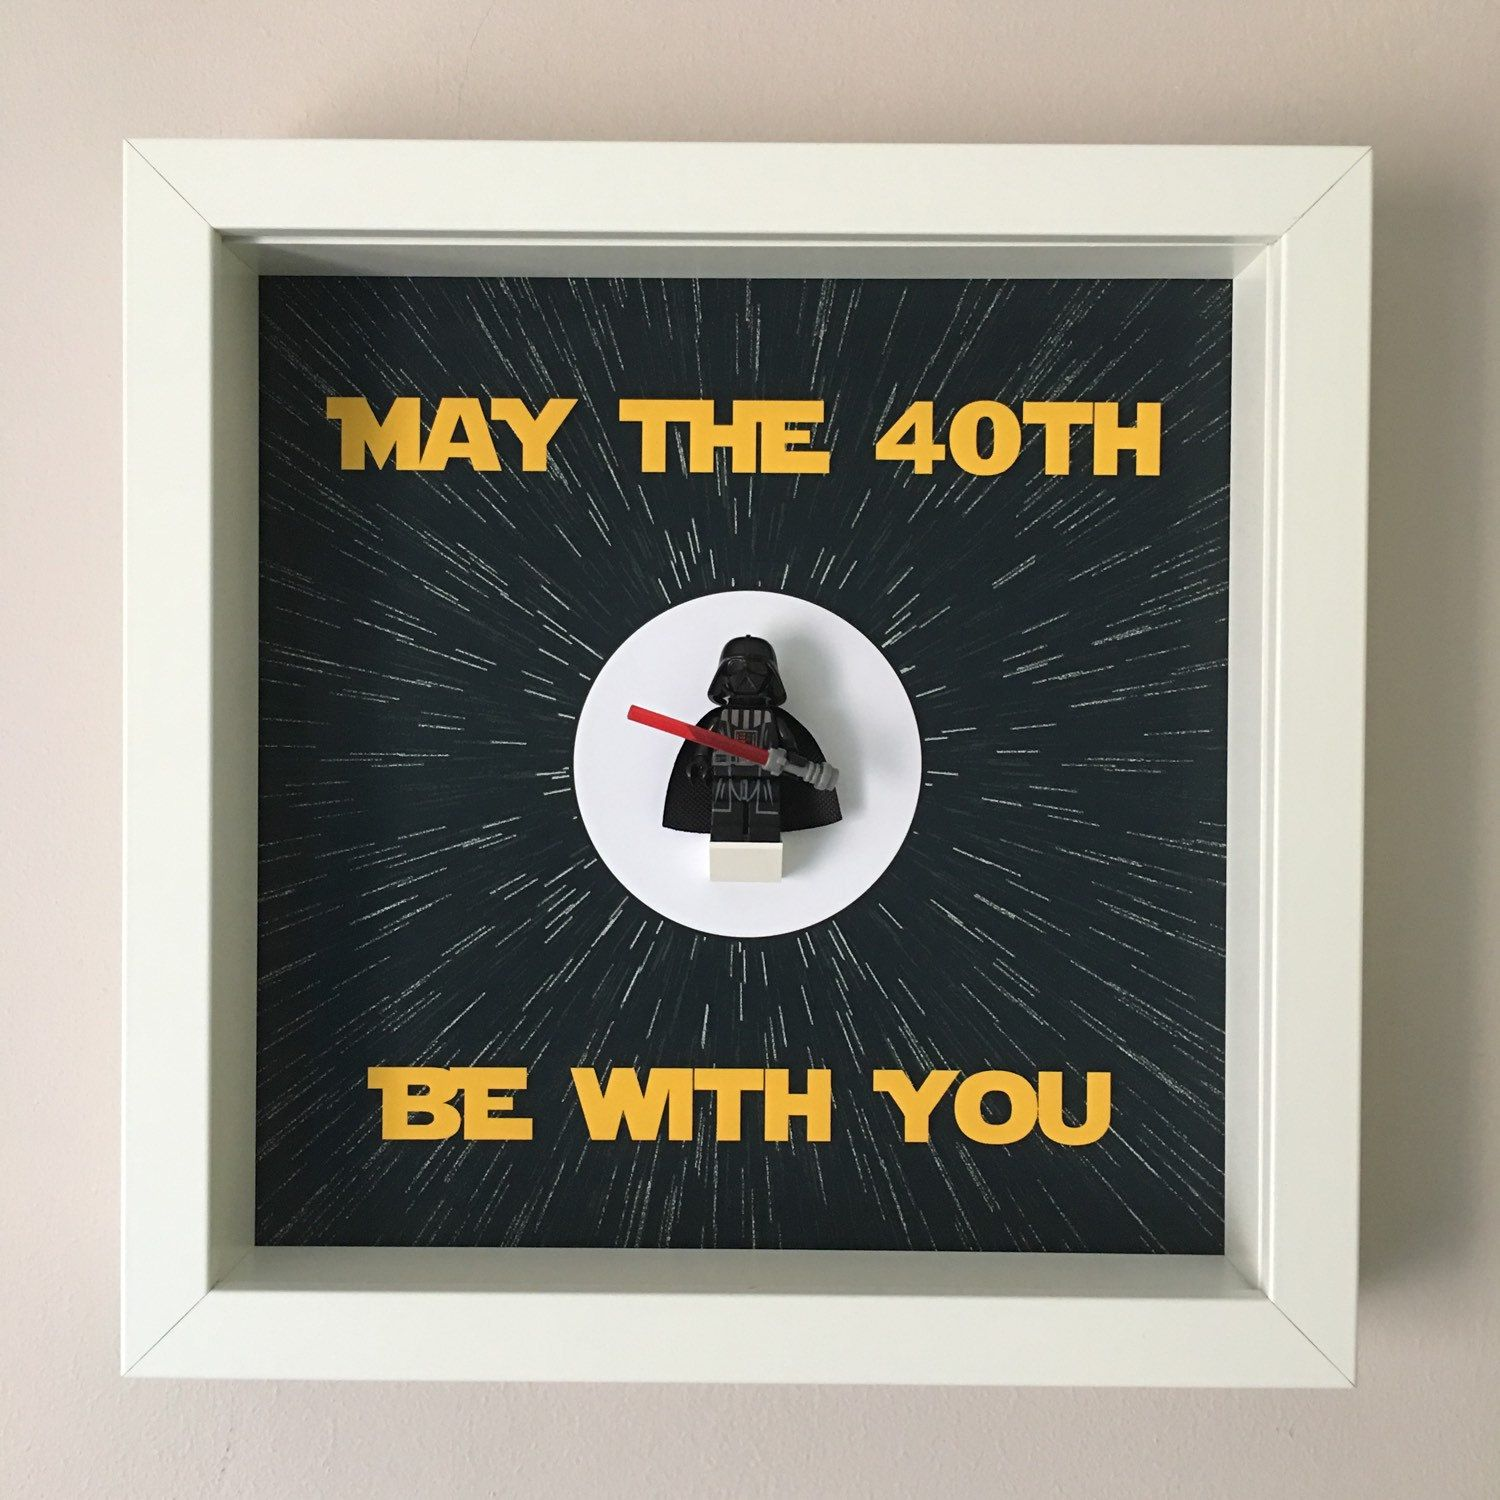 Pin On Gifts For People Turning 40